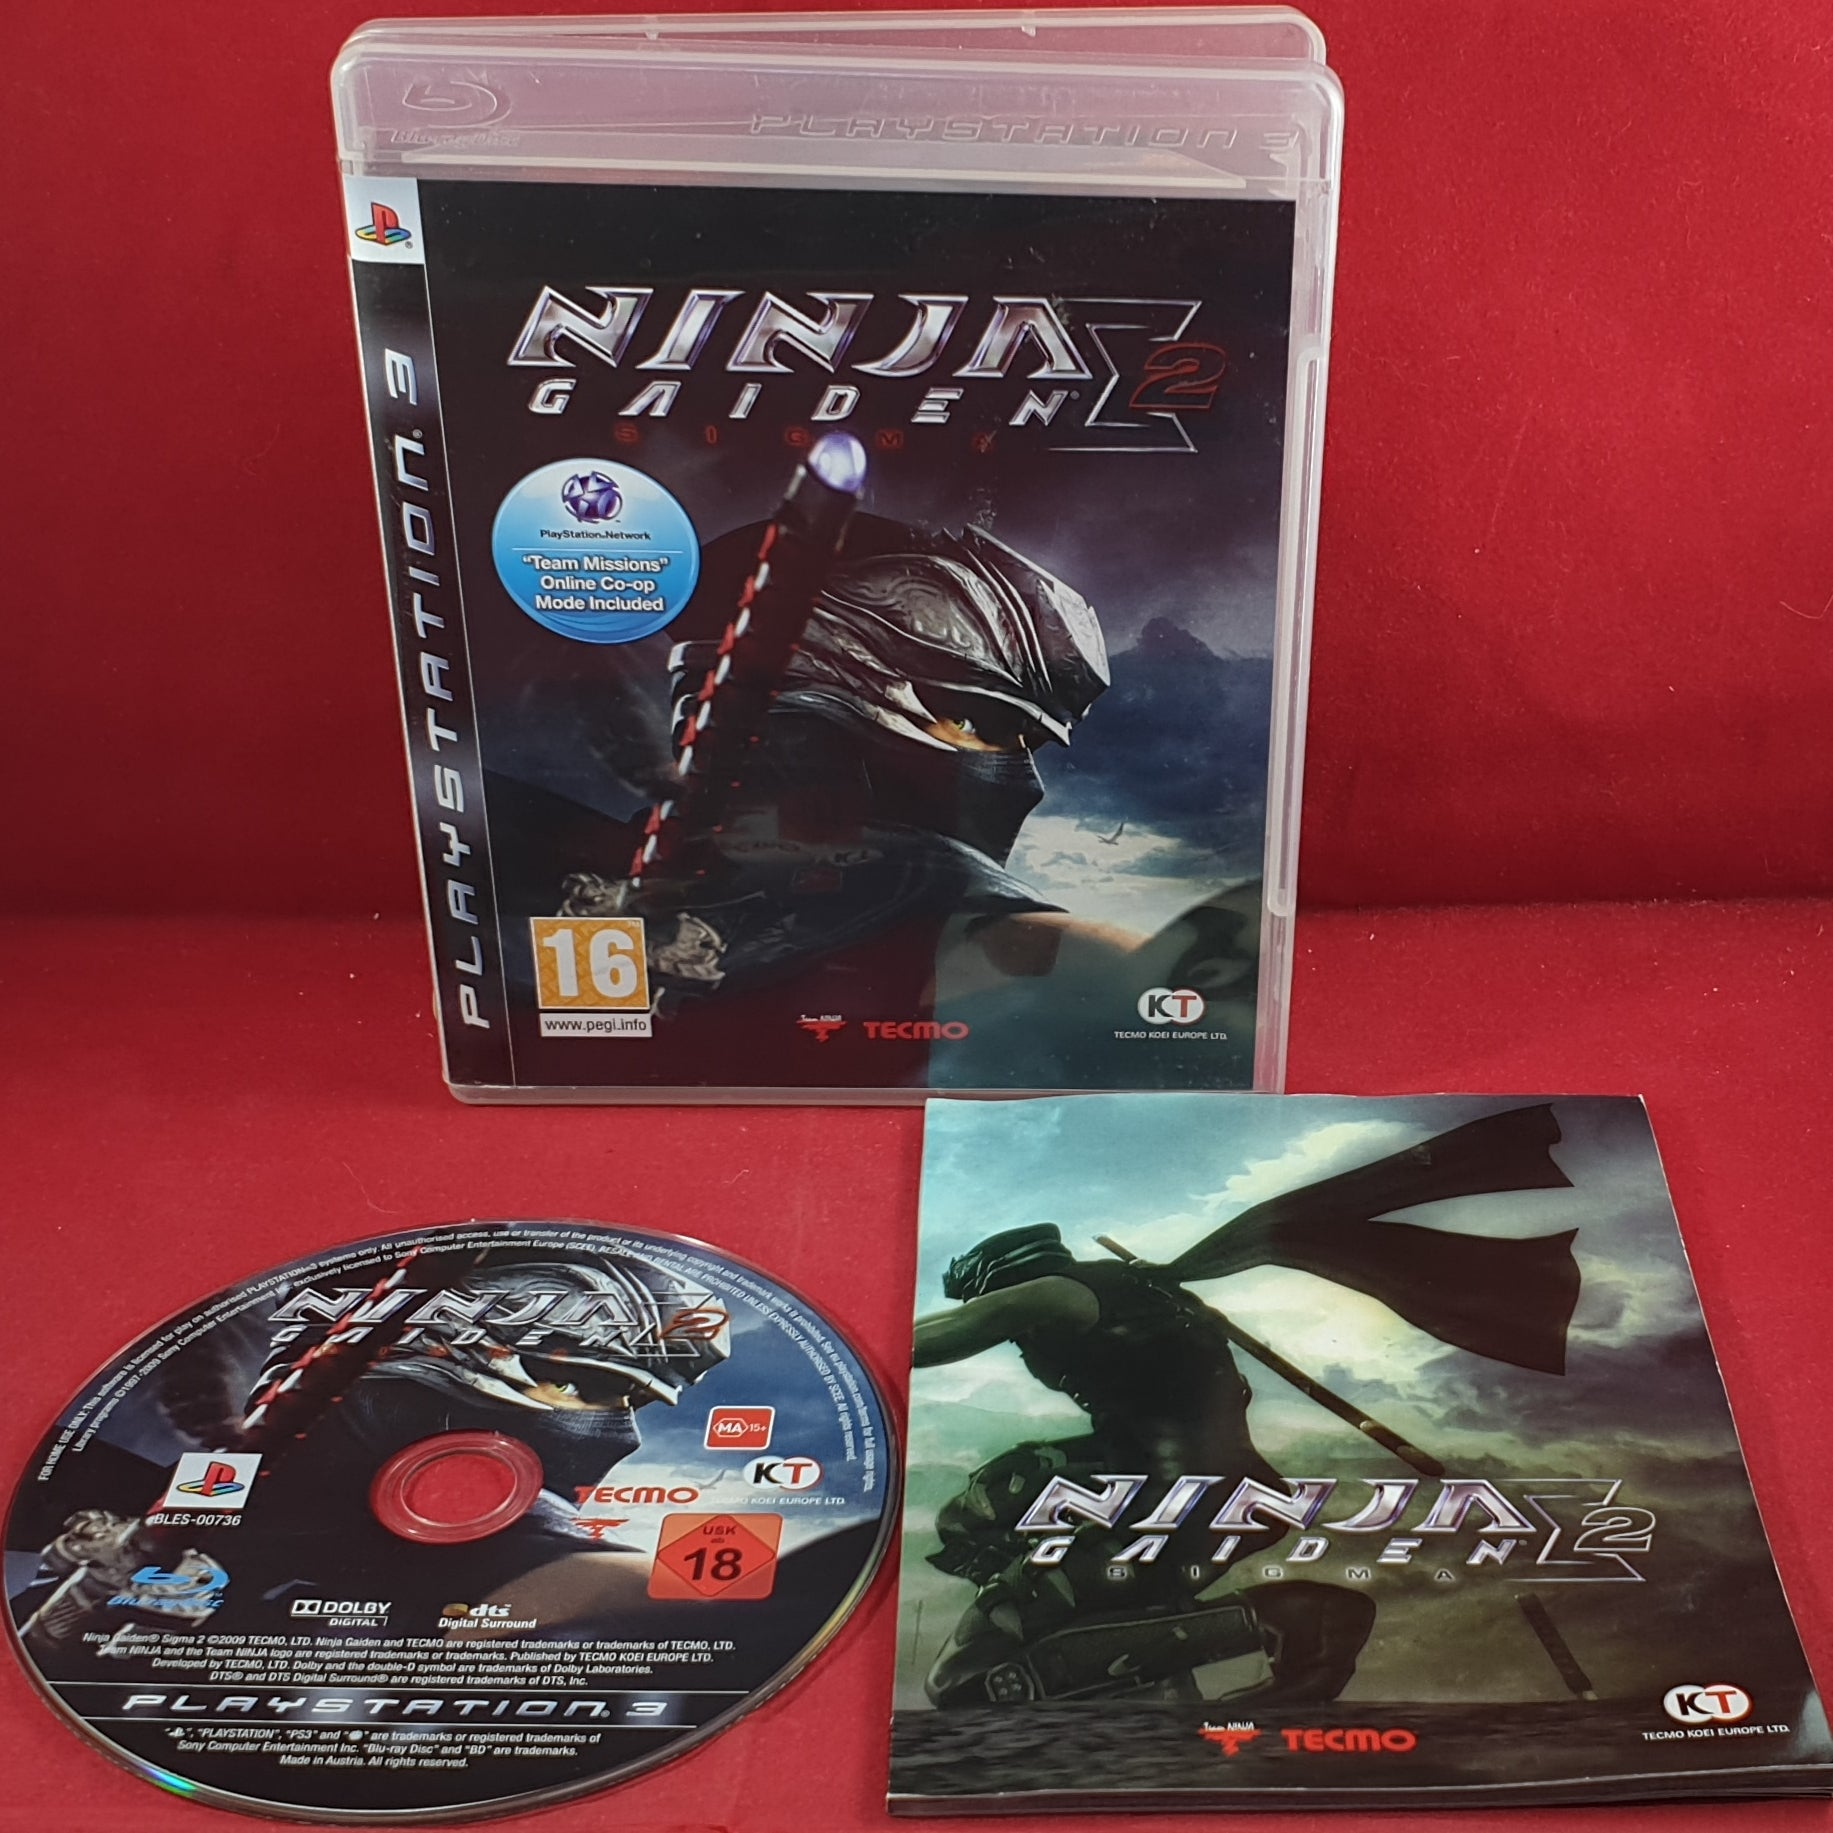 Ninja Gaiden Sigma 2 Sony Playstation 3 Ps3 Game Retro Gamer